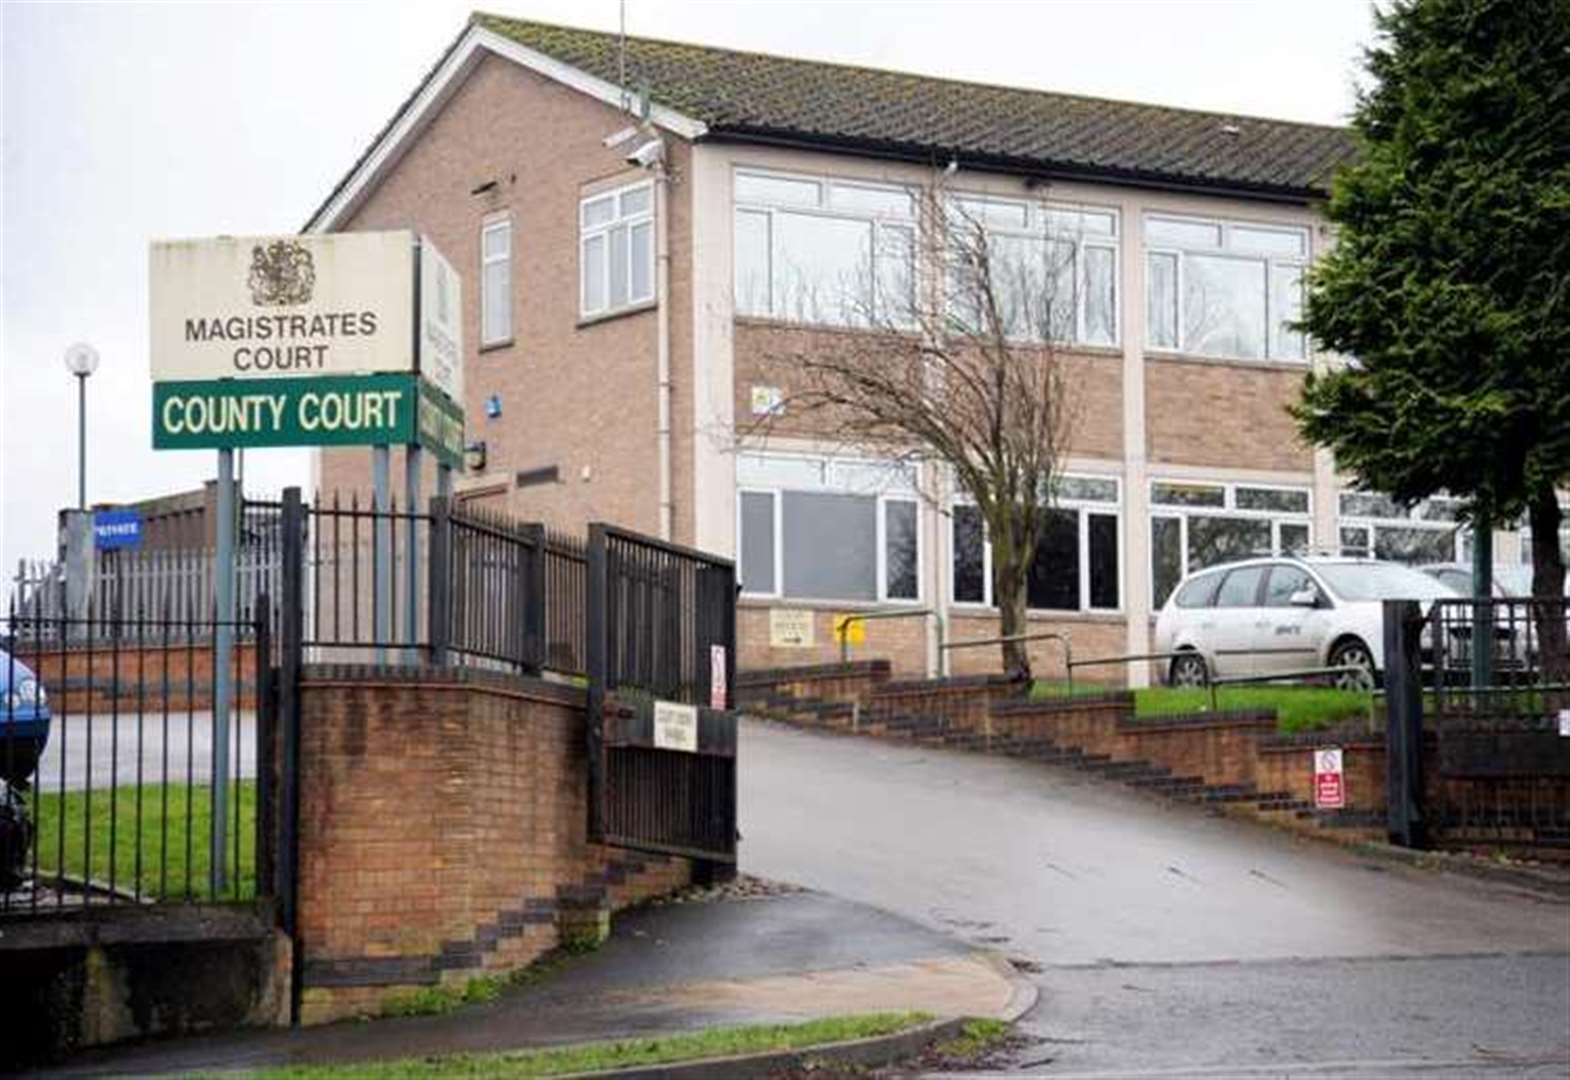 Closure of Grantham Magistrates' Court has had impact on case completion times, says report